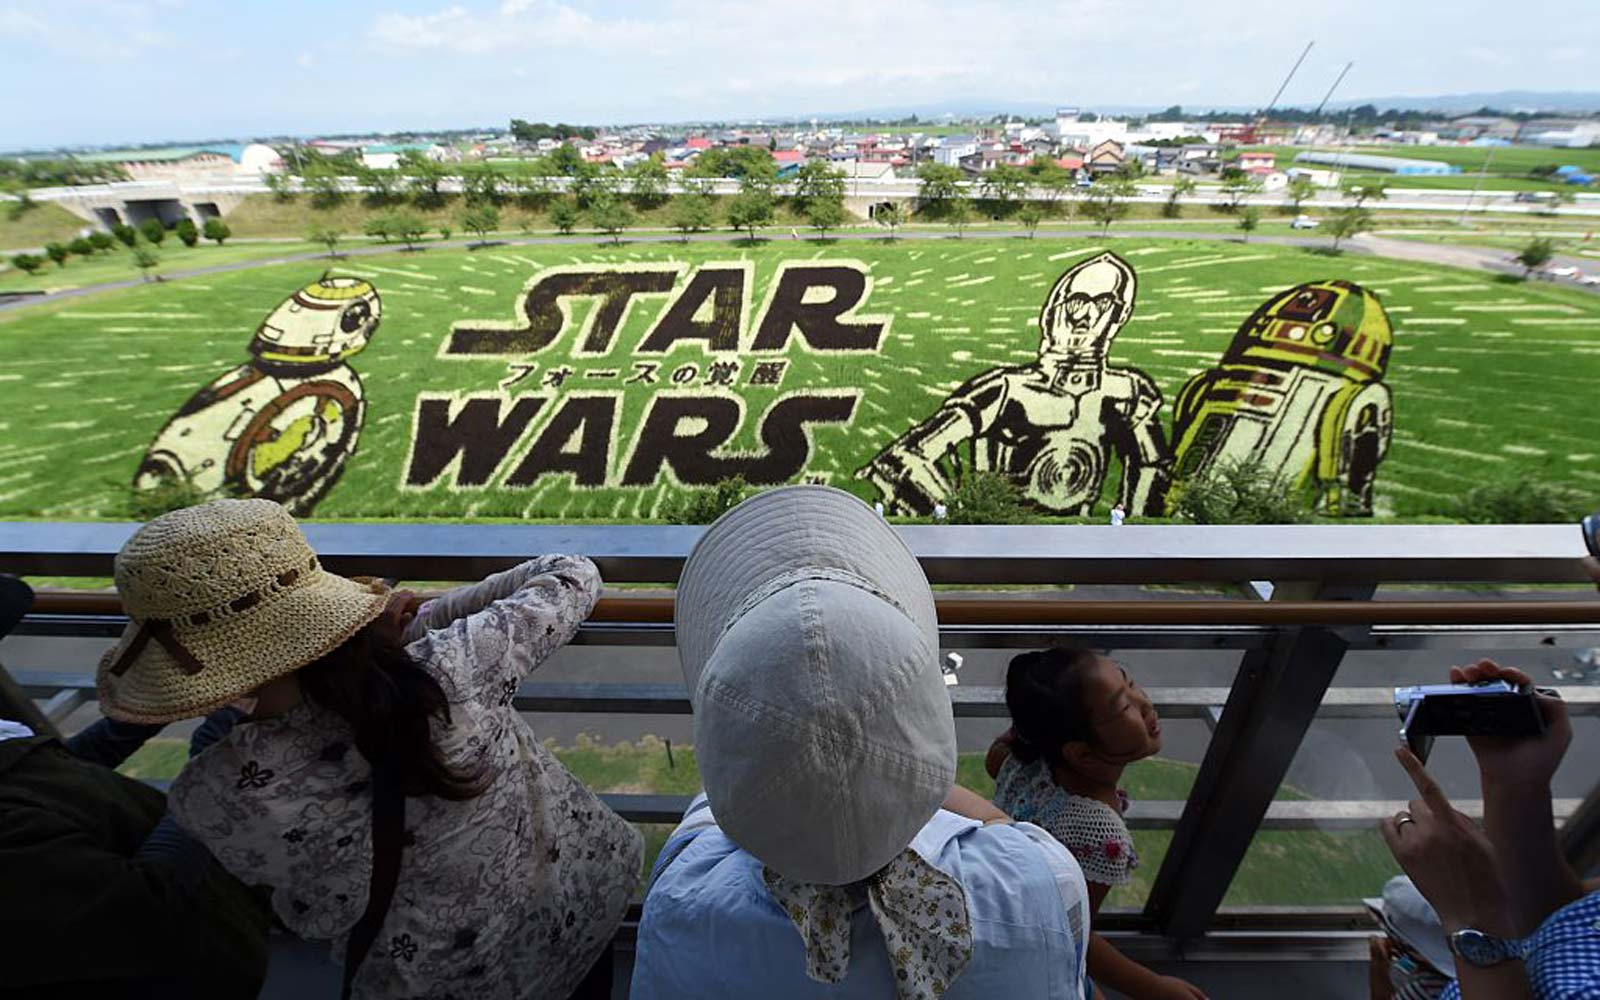 Visitors look at the Star Wars rice paddy with film characters, BB8, C-3PO and R2-D2 in Inakadate village in Aomori prefecture